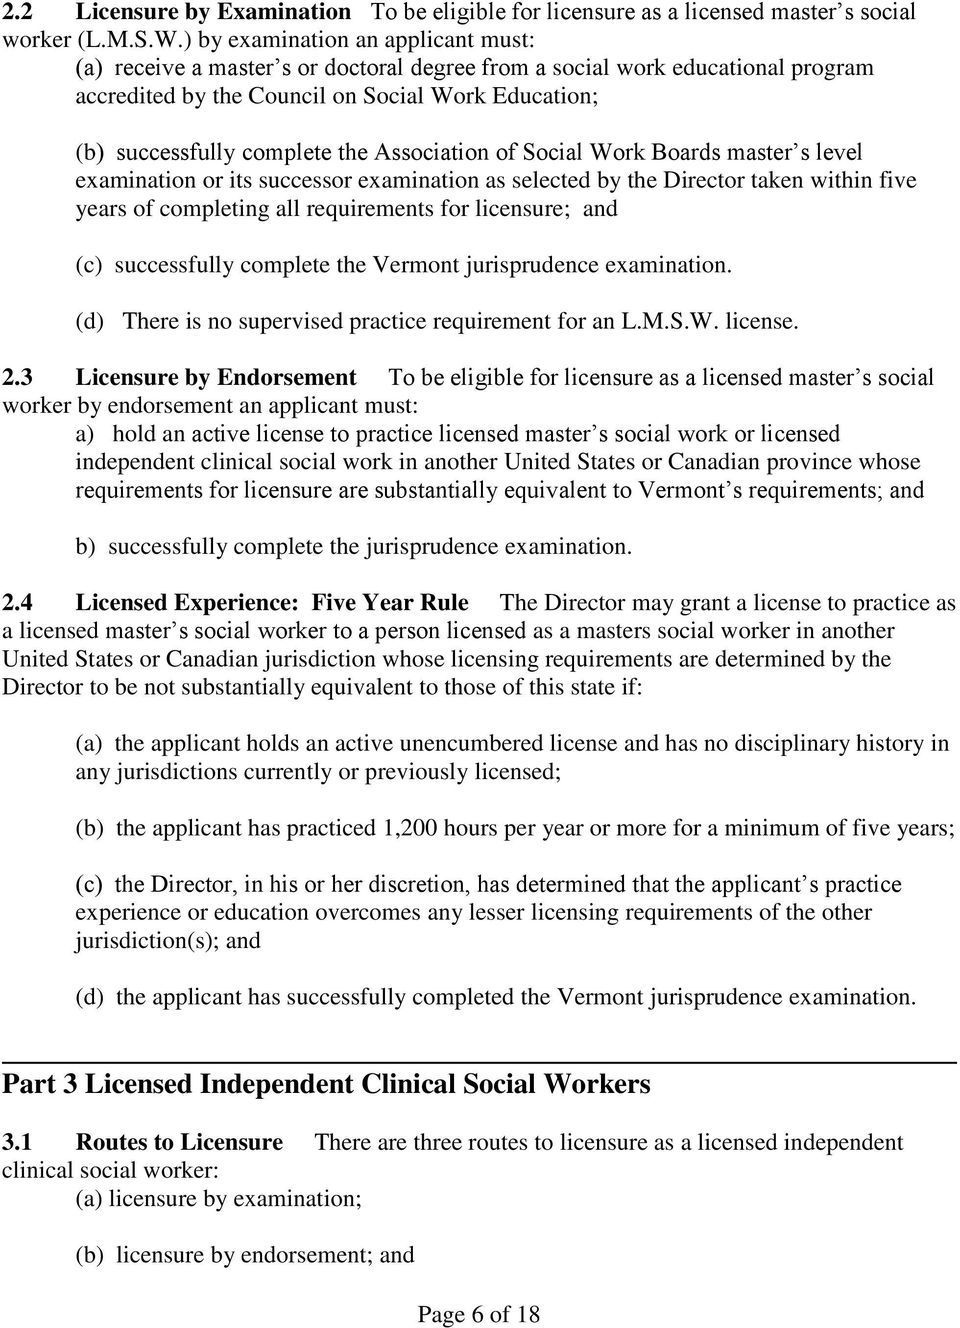 Association of Social Work Boards master s level examination or its successor examination as selected by the Director taken within five years of completing all requirements for licensure; and (c)